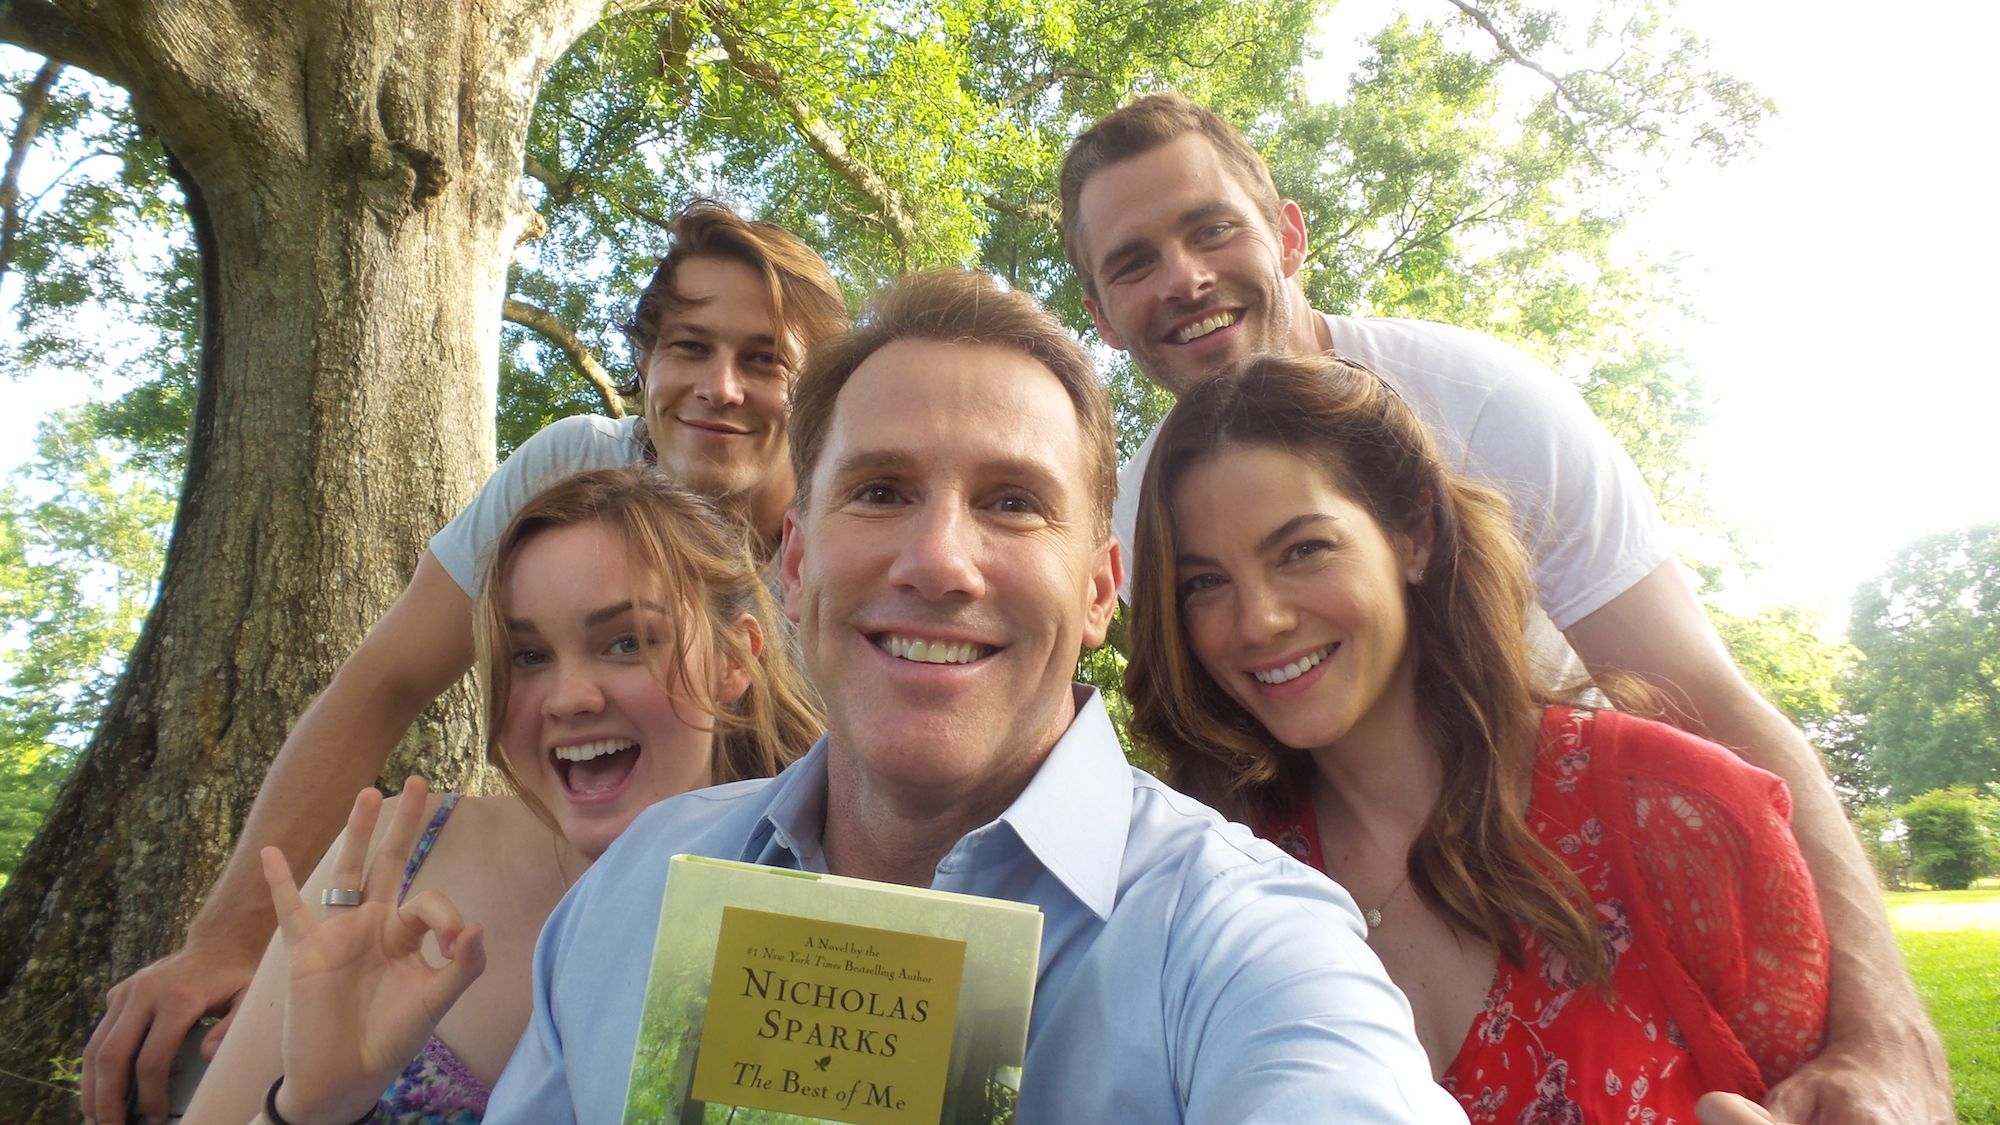 Check out this picture of me and the cast of TheBestofMe in